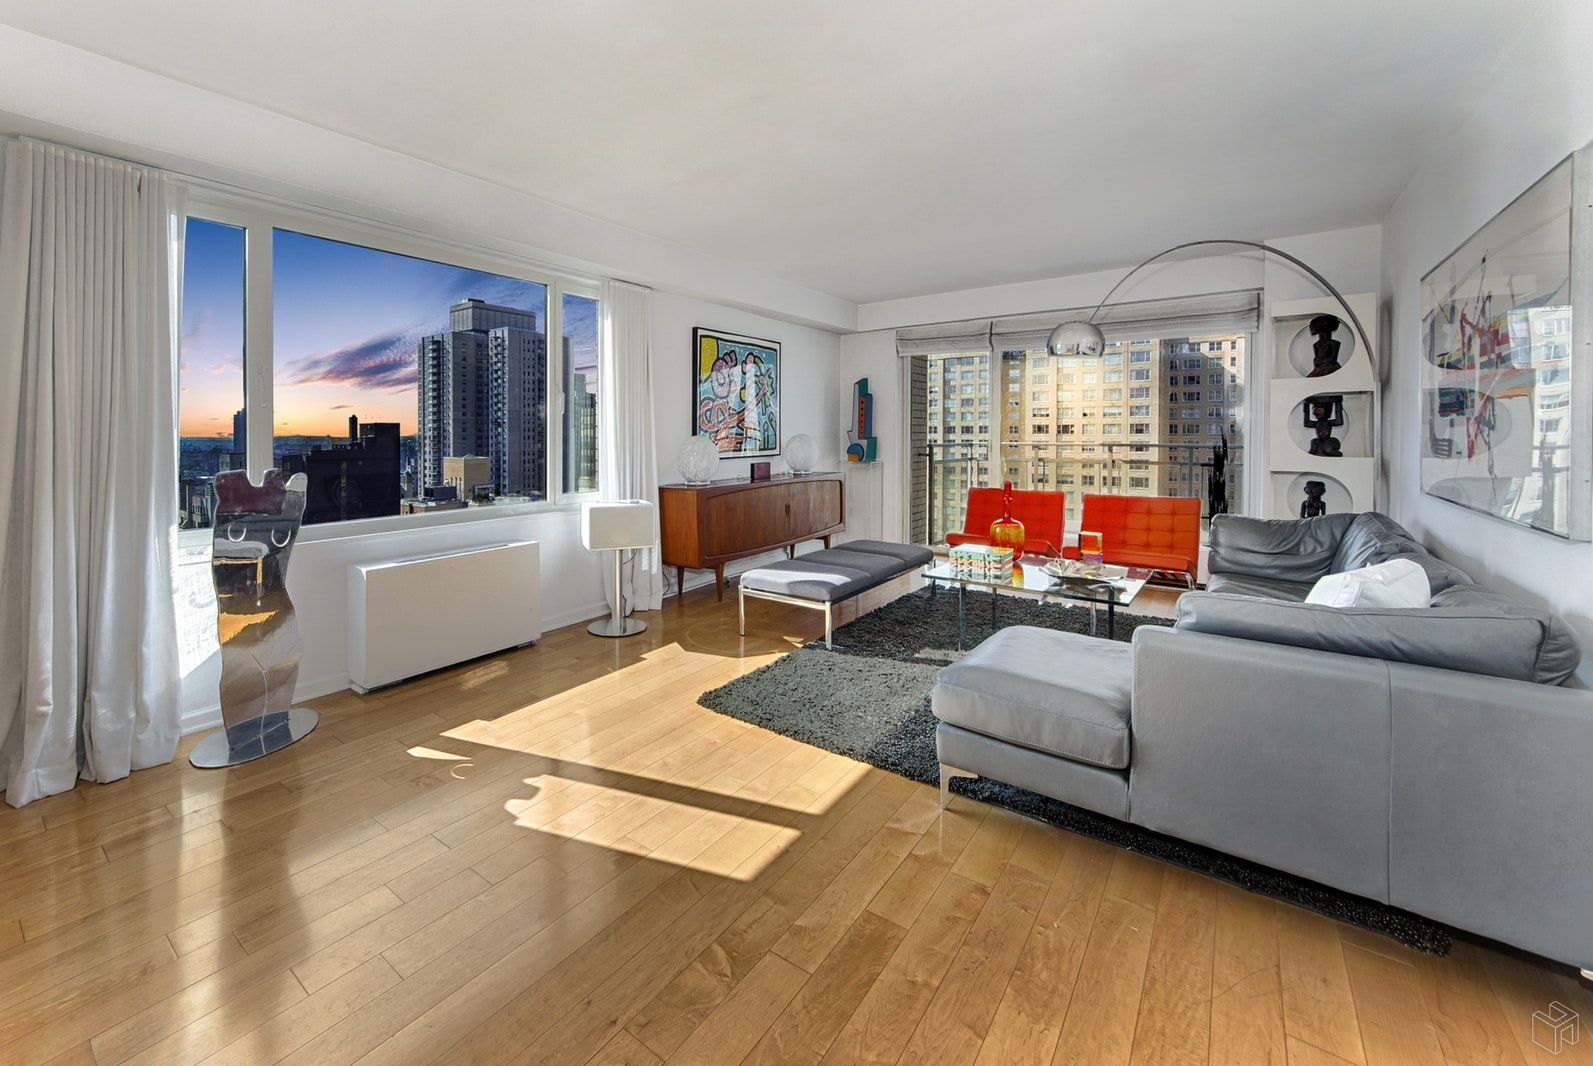 303 East 57th Street 25b, Midtown East, NYC, 10022, $690,000, Property For Sale, Halstead Real Estate, Photo 1